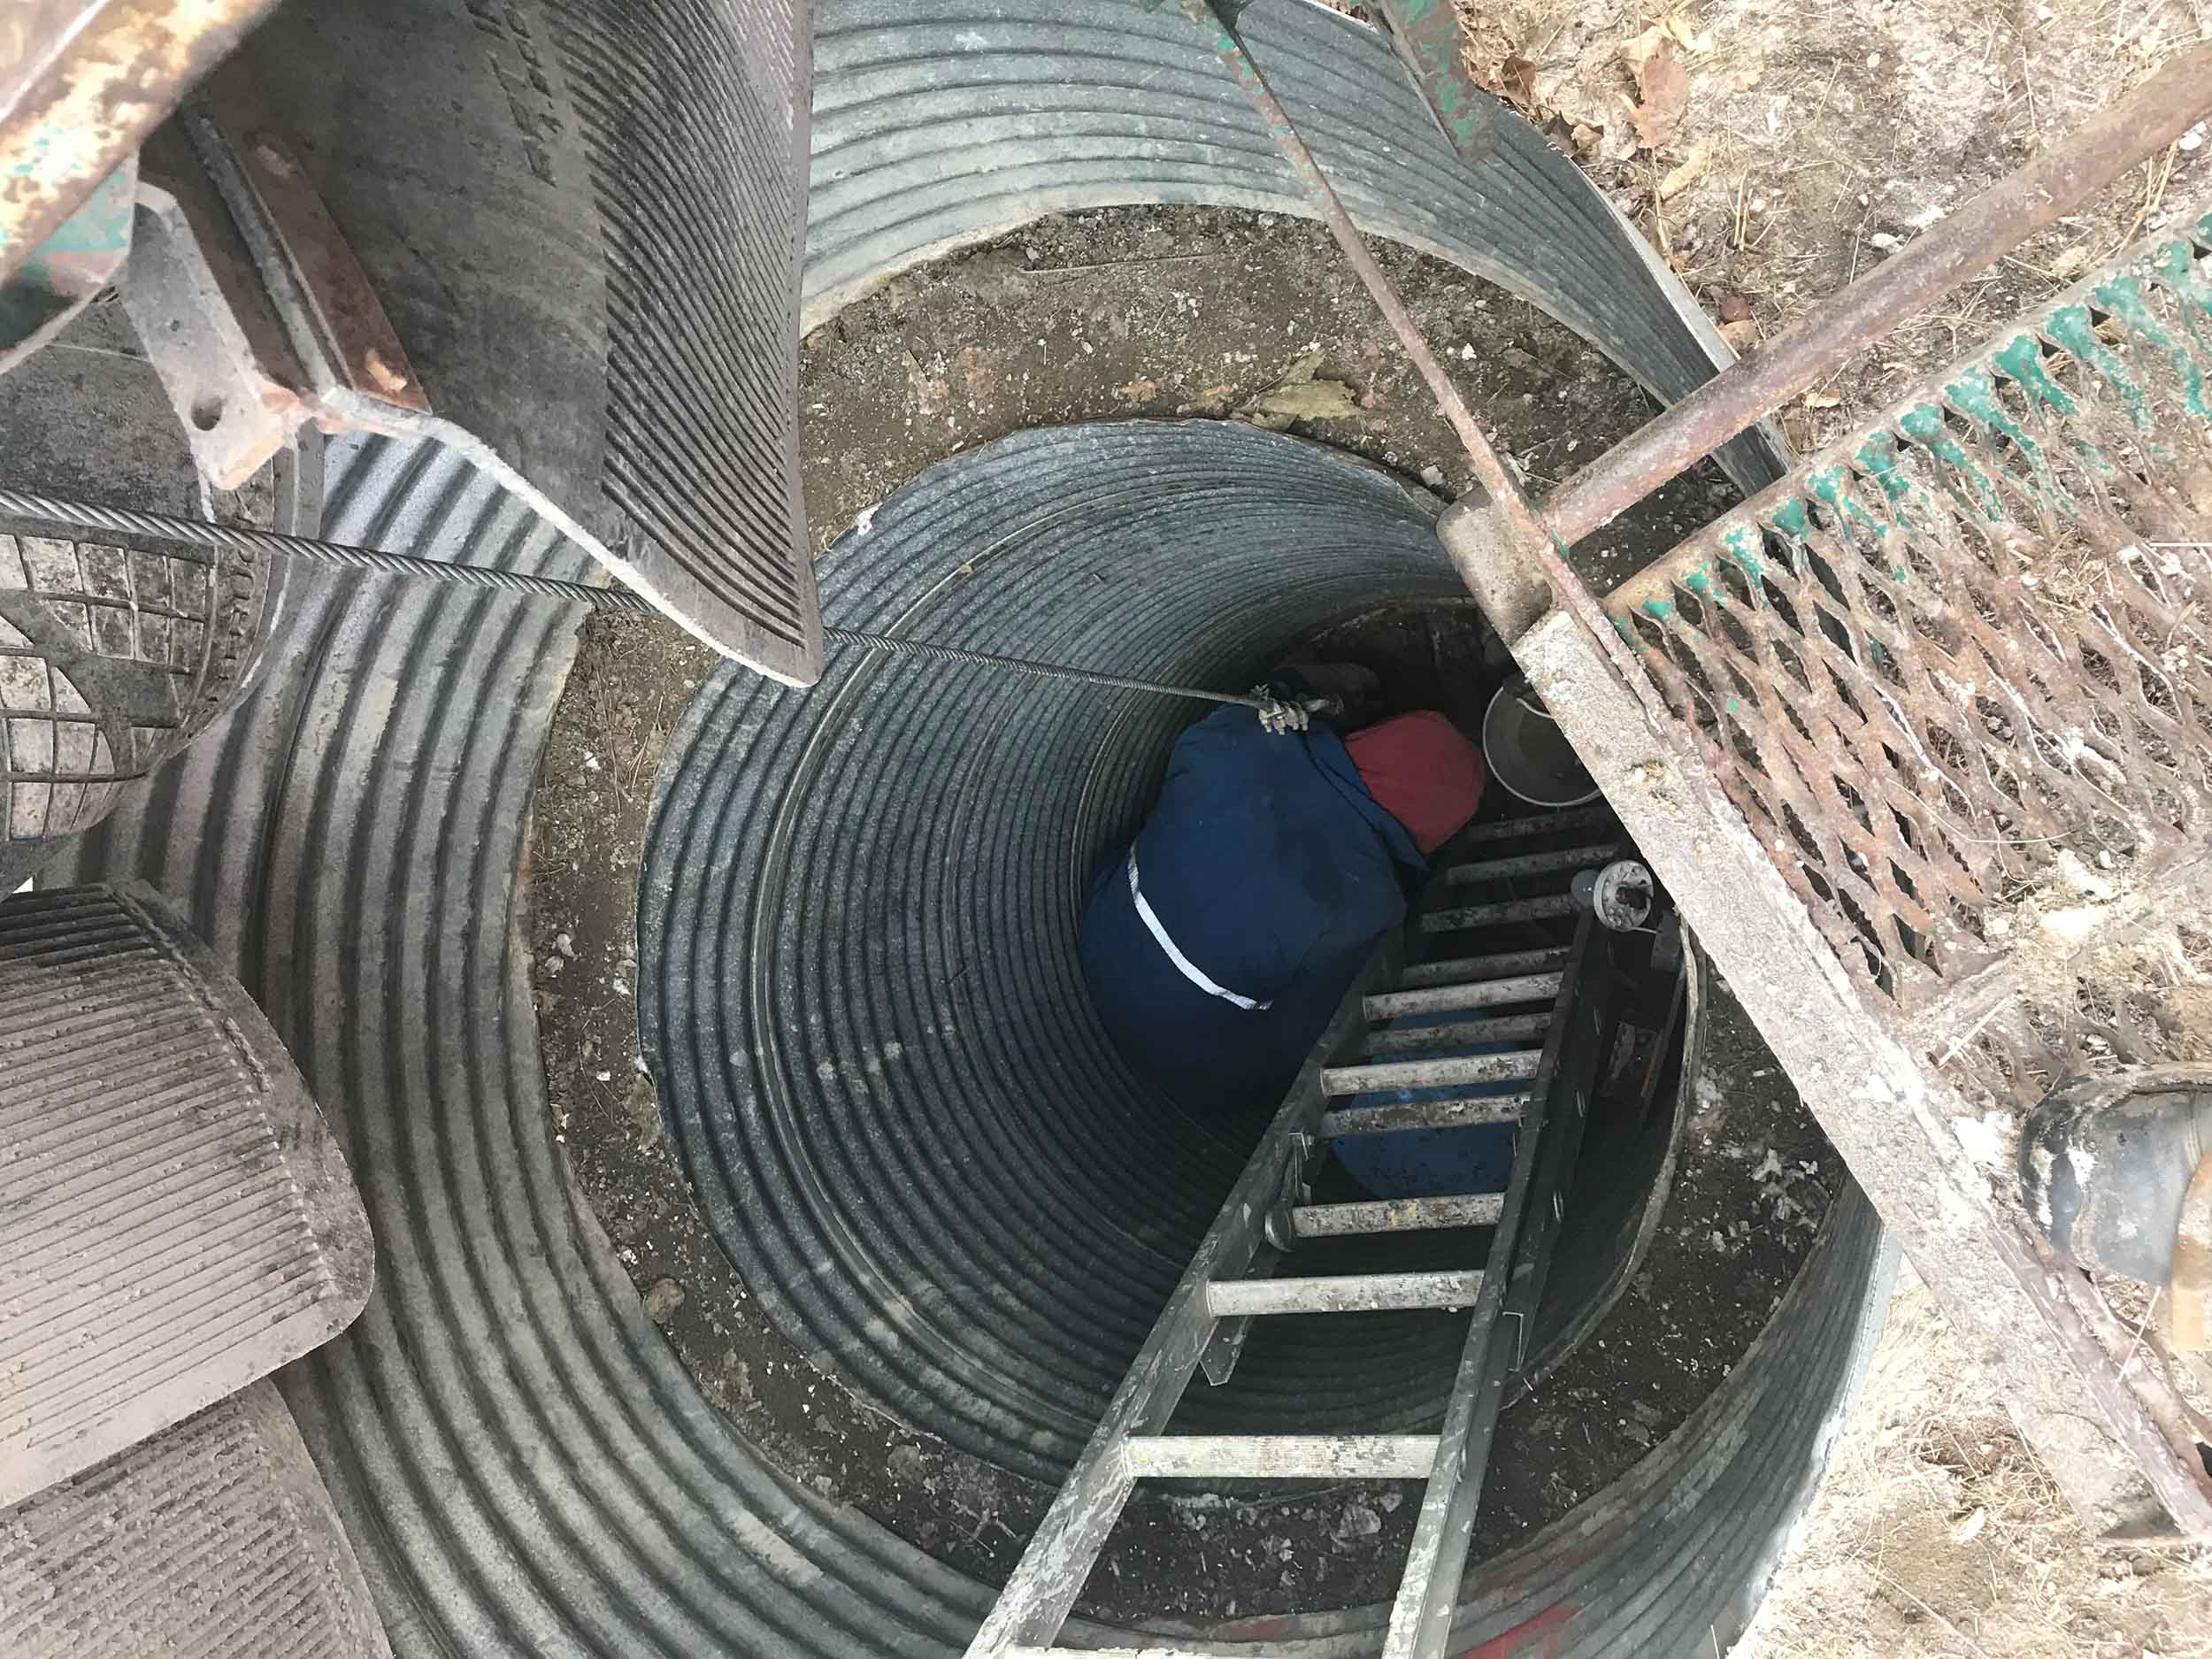 Water Well Pit Decommissioning by Steelhead Ventures